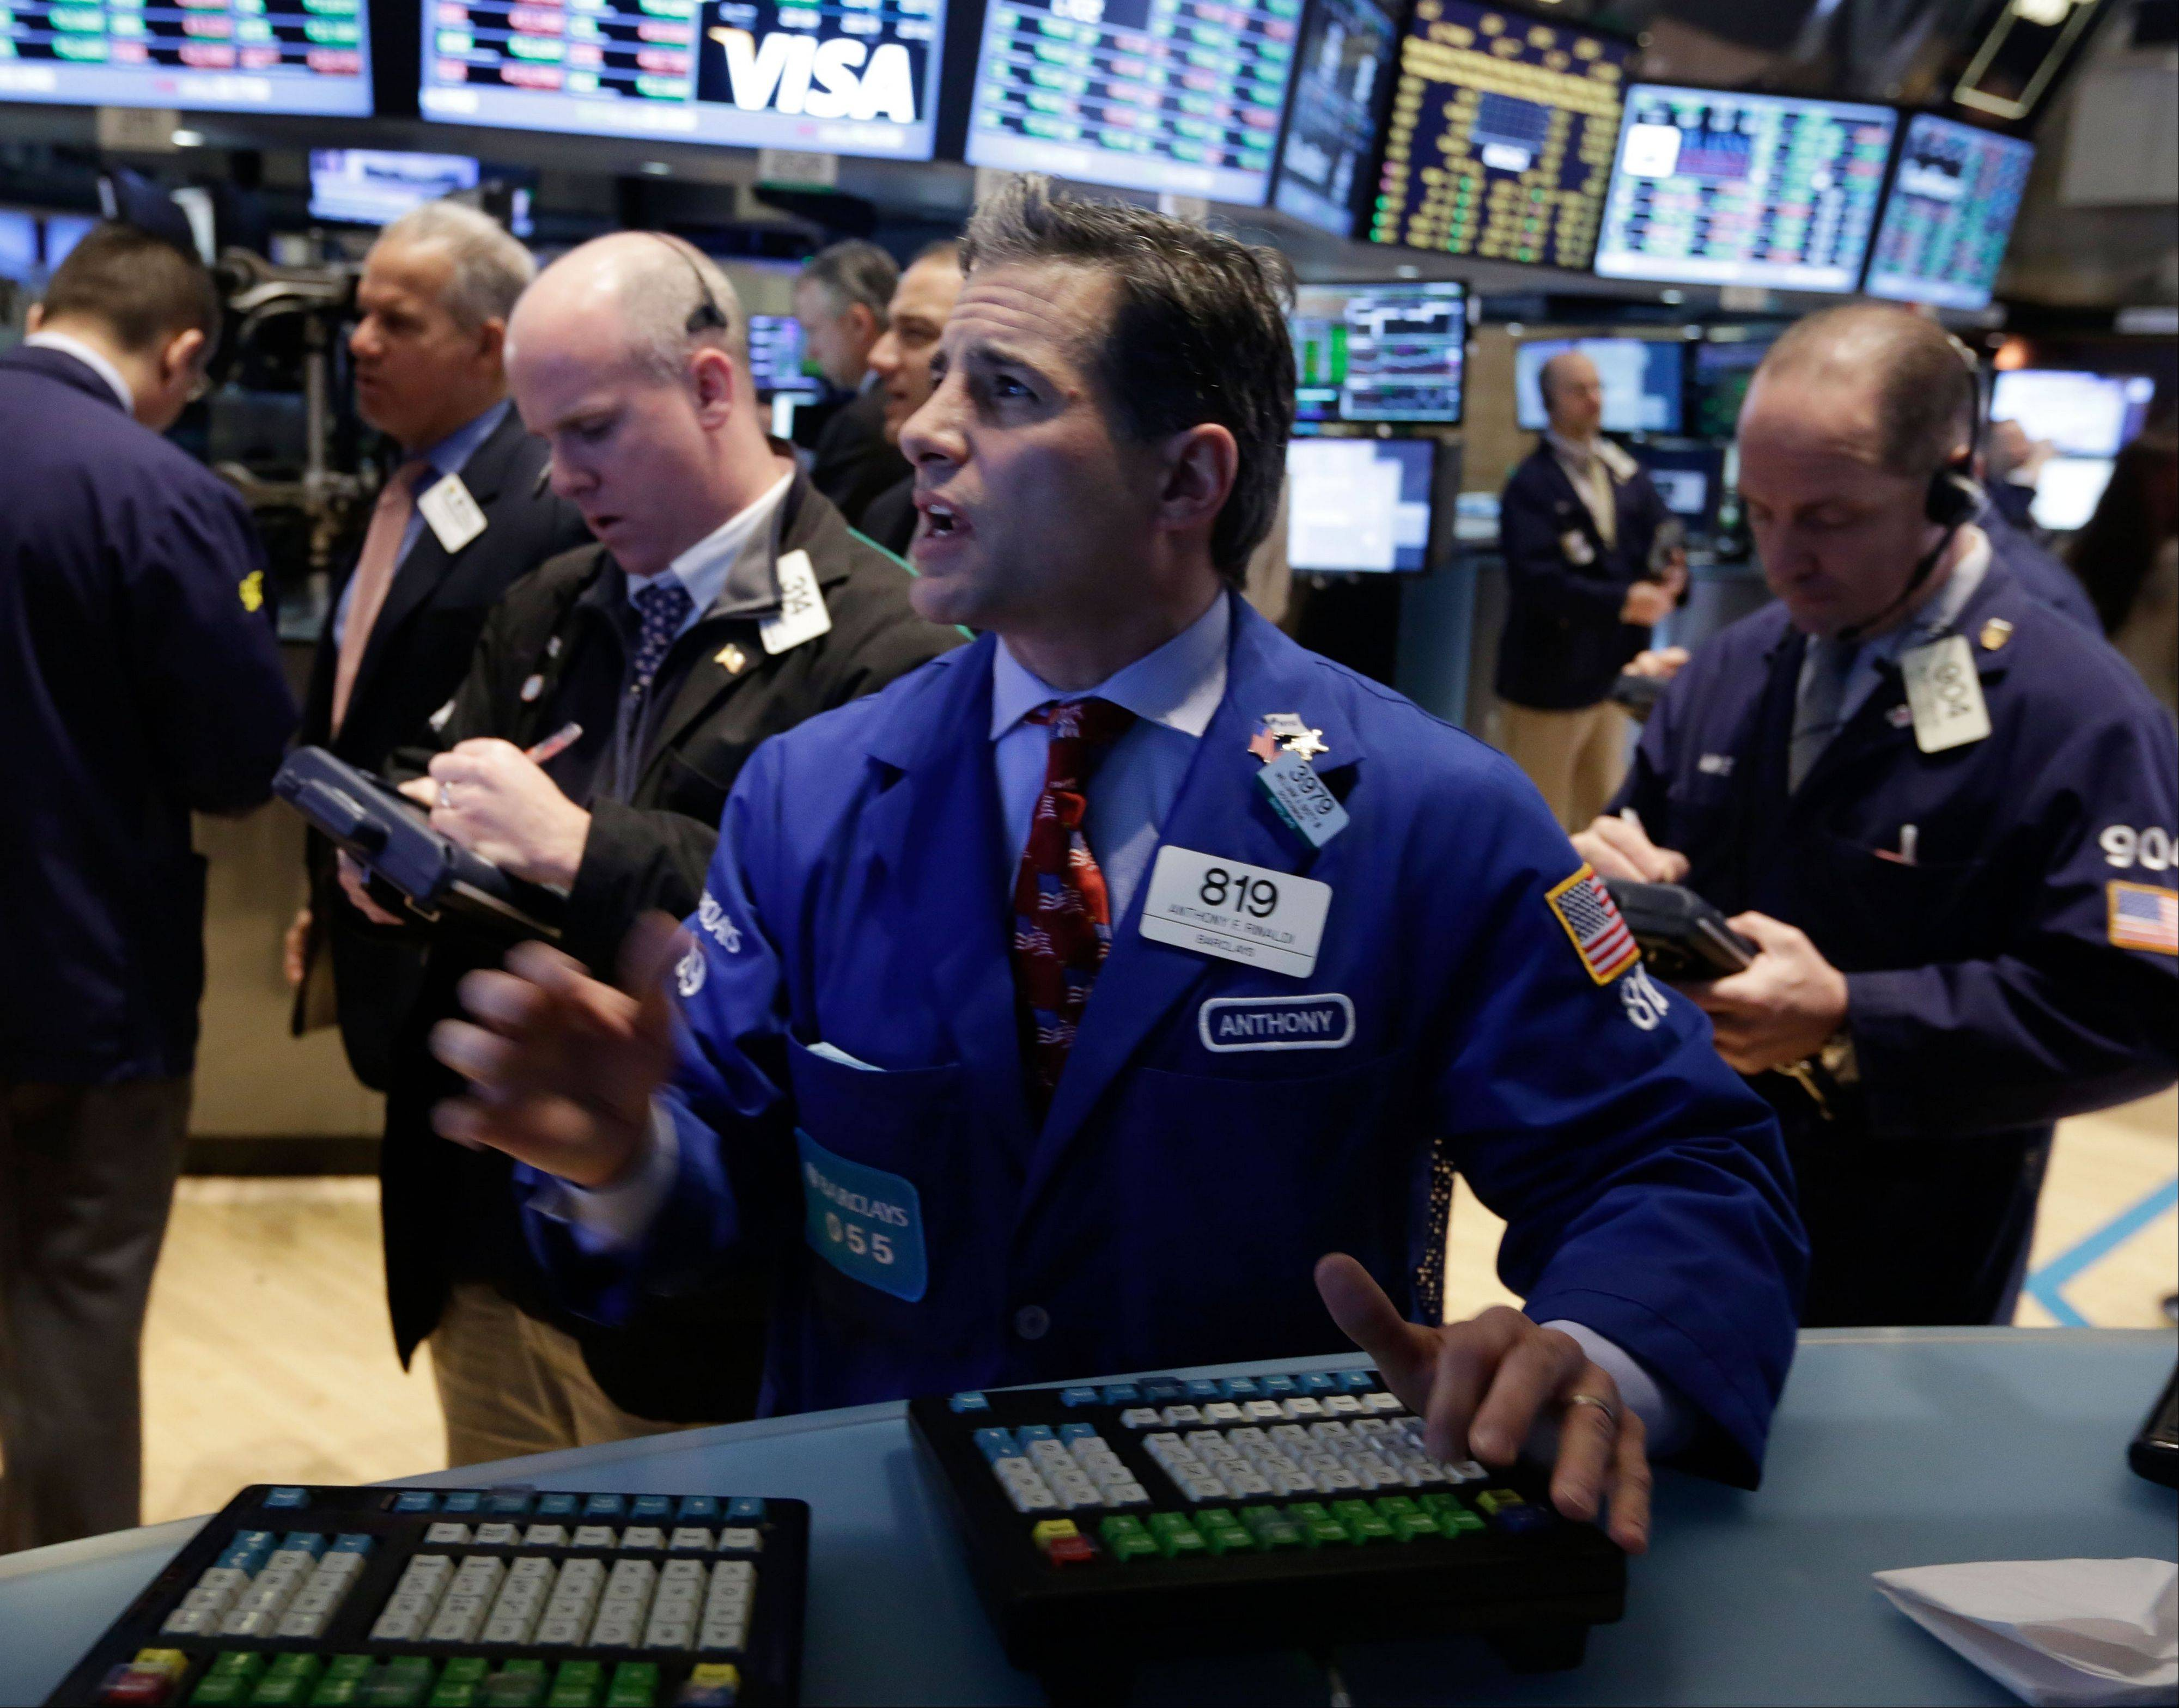 U.S. stocks rose Wednesday, giving the Standard & Poor�s 500 Index its biggest gain of the year, as better-than-forecast retail sales and corporate merger activity signaled confidence in the economy.